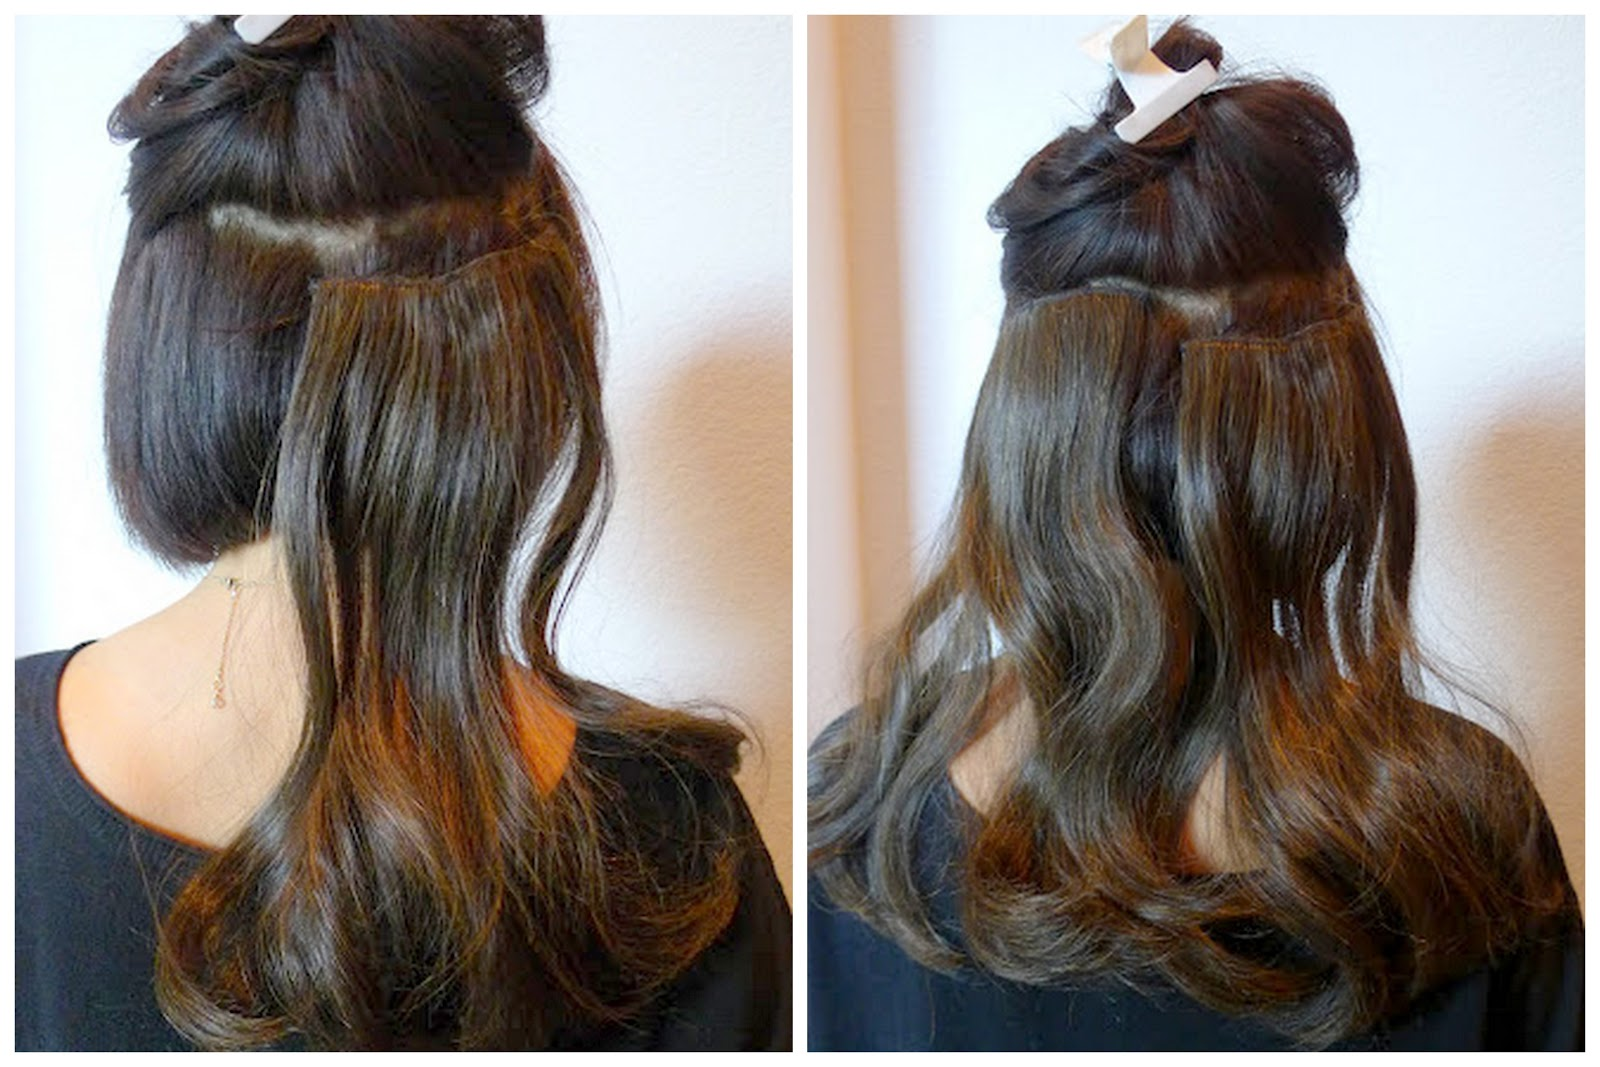 Diy how to put up a chignon when you have short hair prt step 2 let half of the top layer of your hair down covering the hair pieces youve just clipped on then clip on the third hair extension larger piece pmusecretfo Image collections